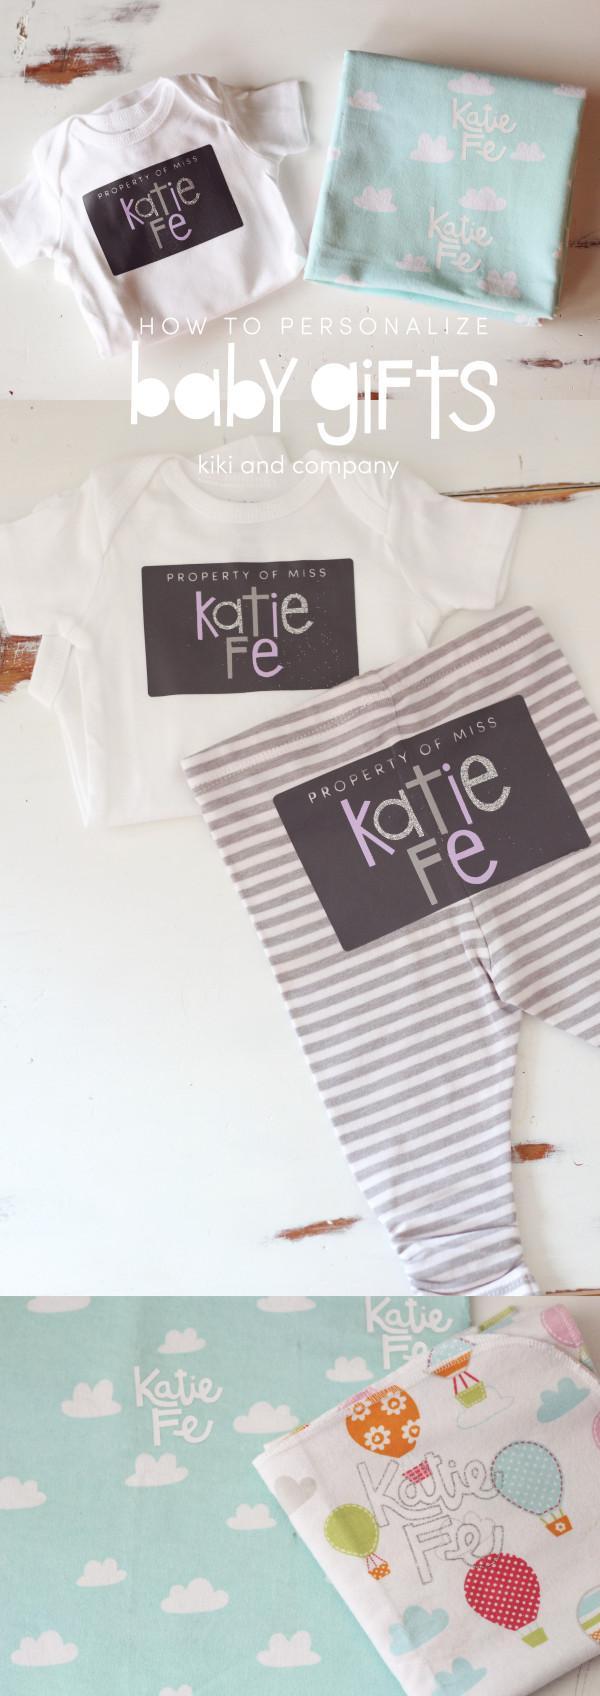 How to personalize baby gifts from kiki and company